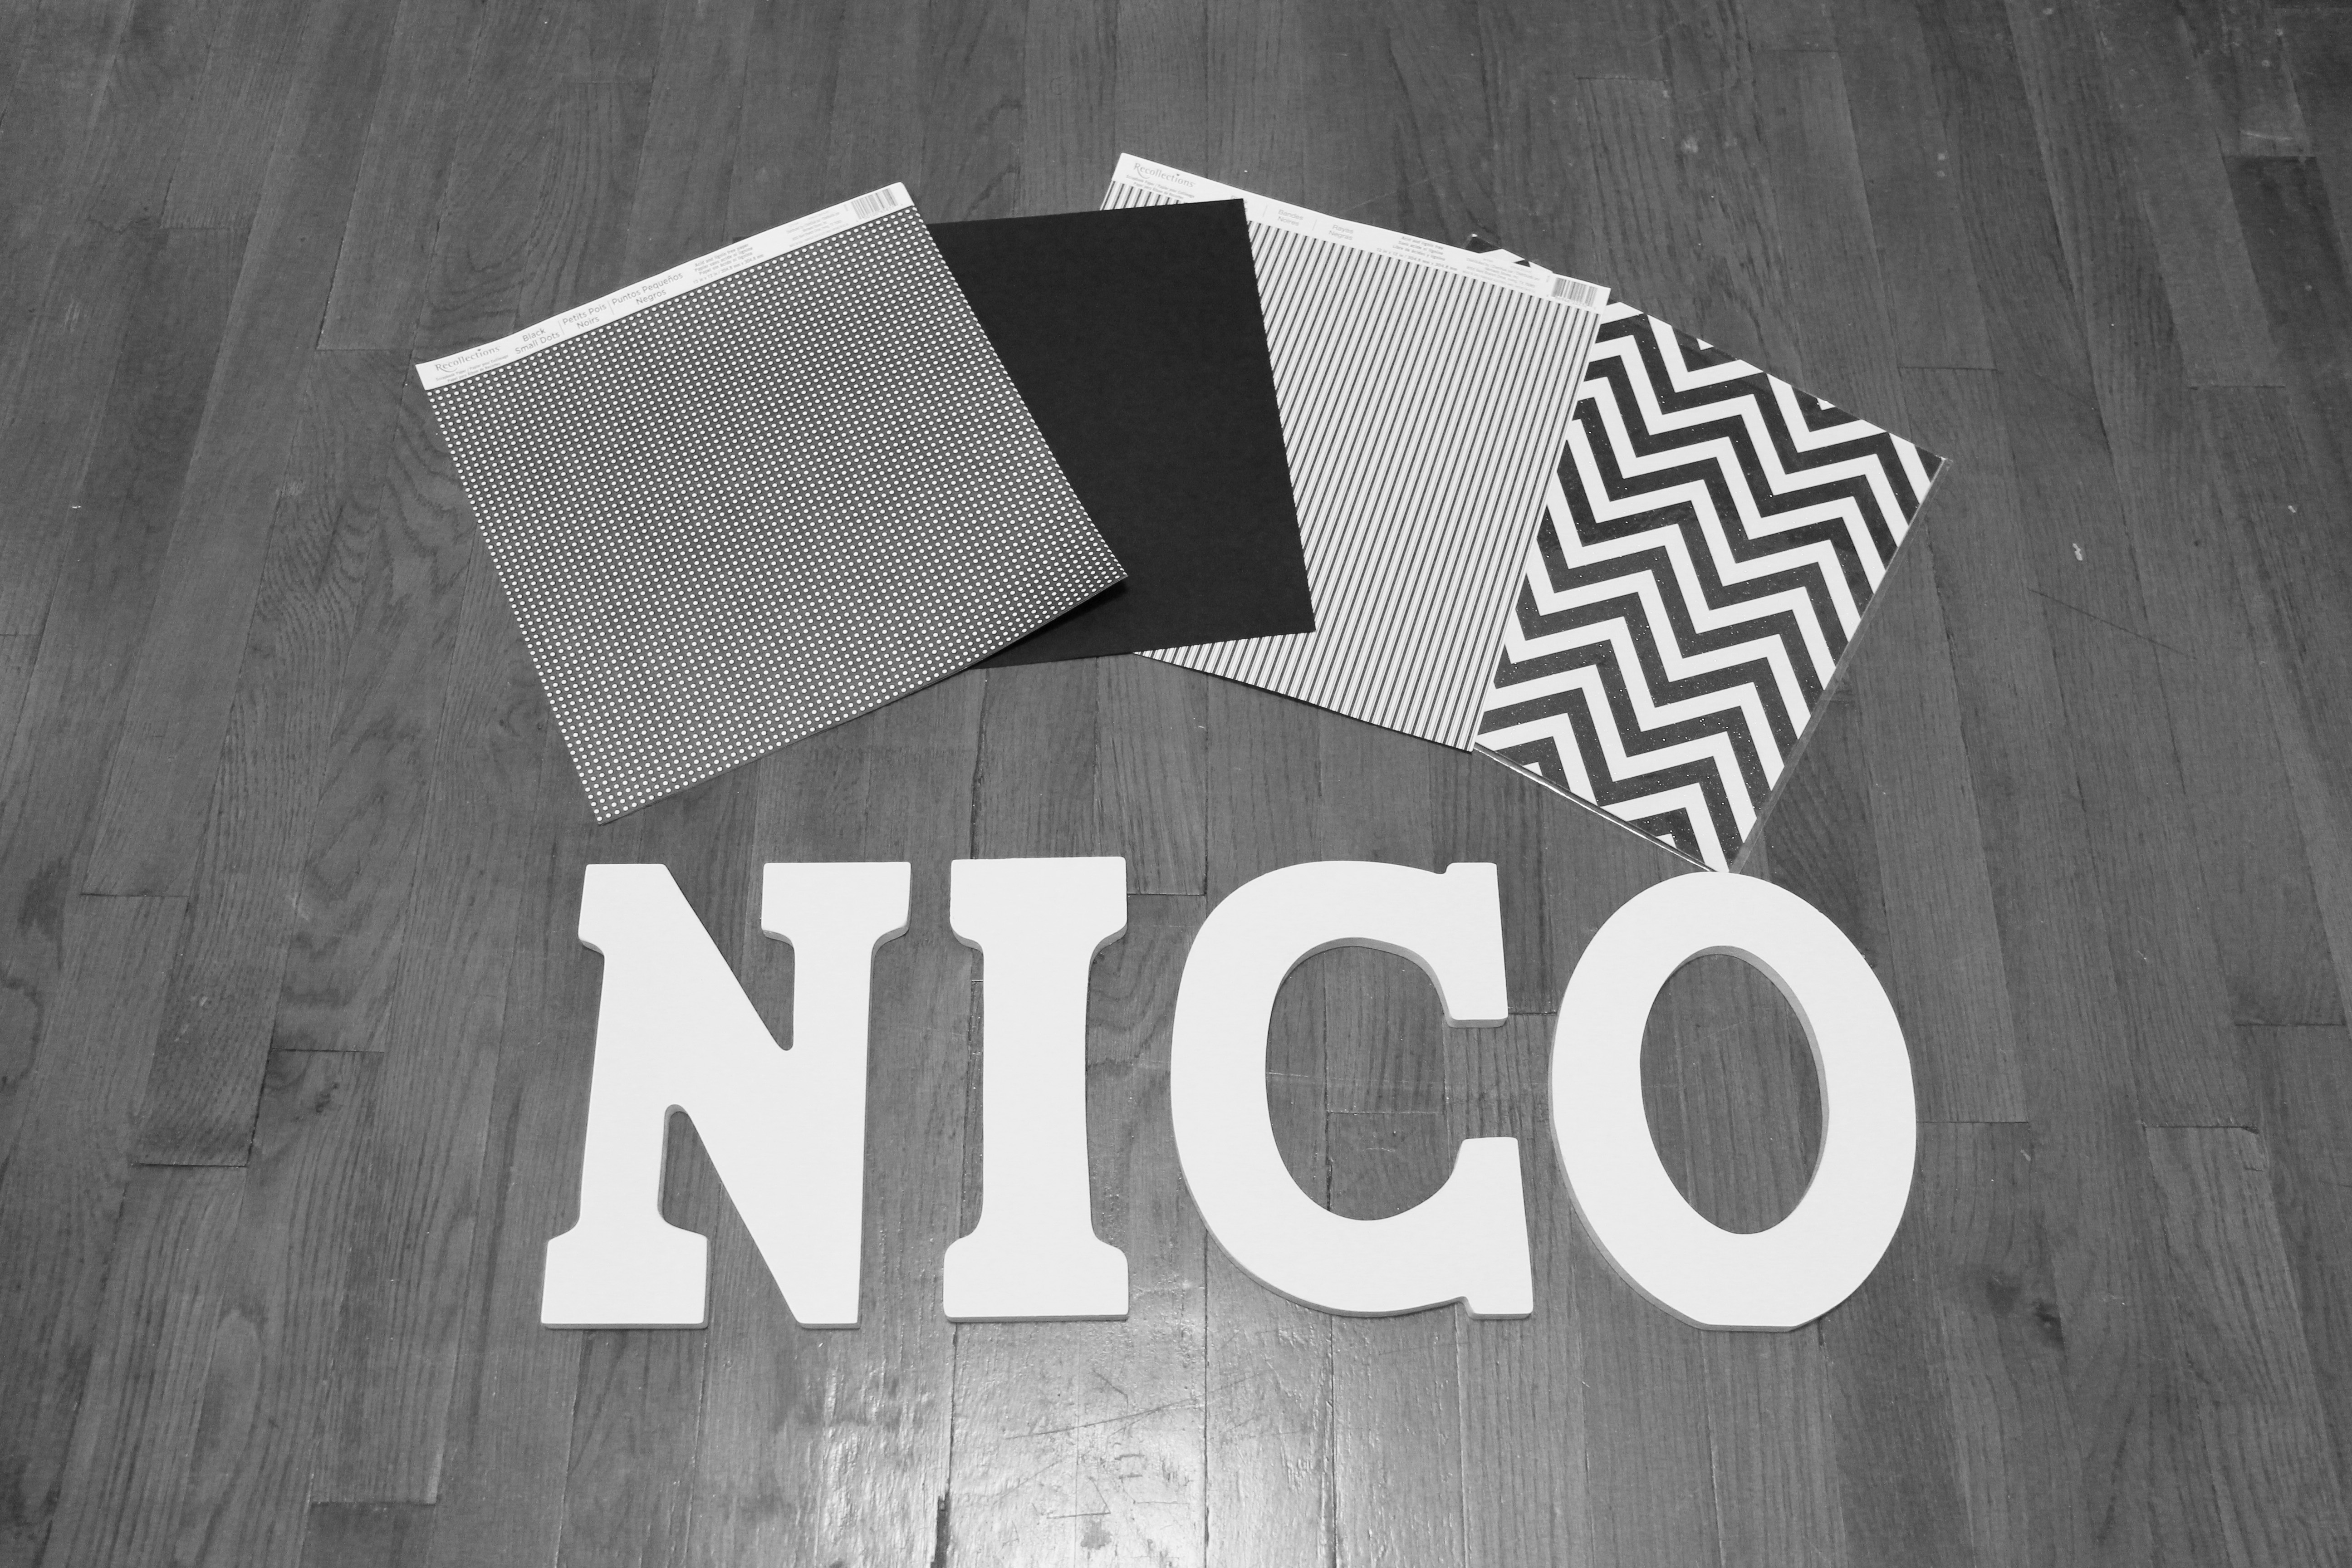 DIY: Decorate Wooden Letters For Nursery